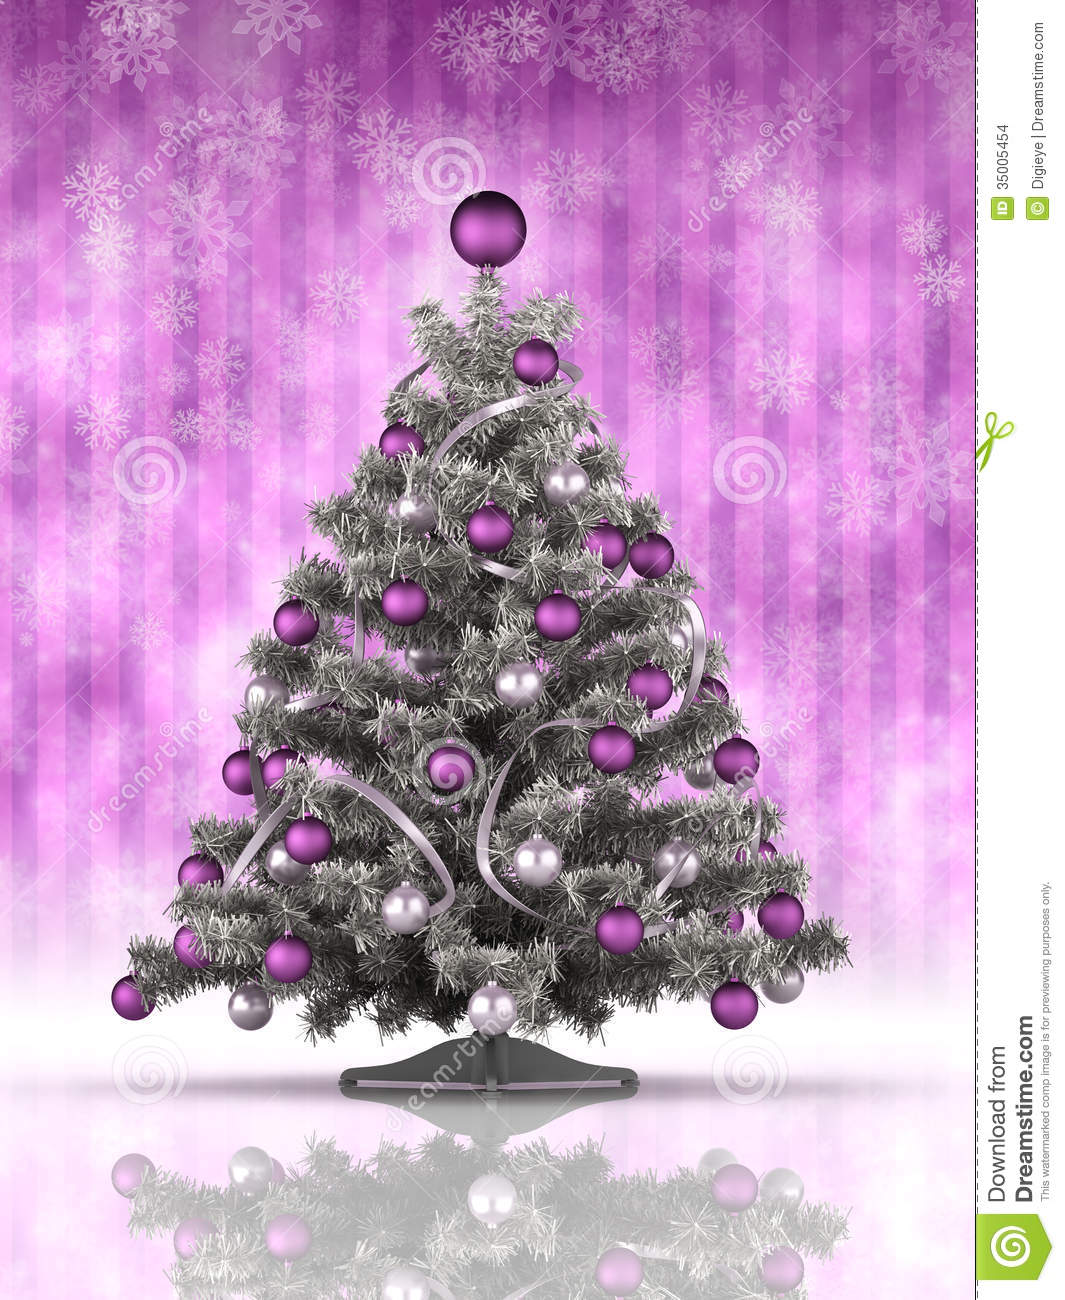 Christmas tree decorations purple and silver - Christmas Tree On Purple Background Stock Images